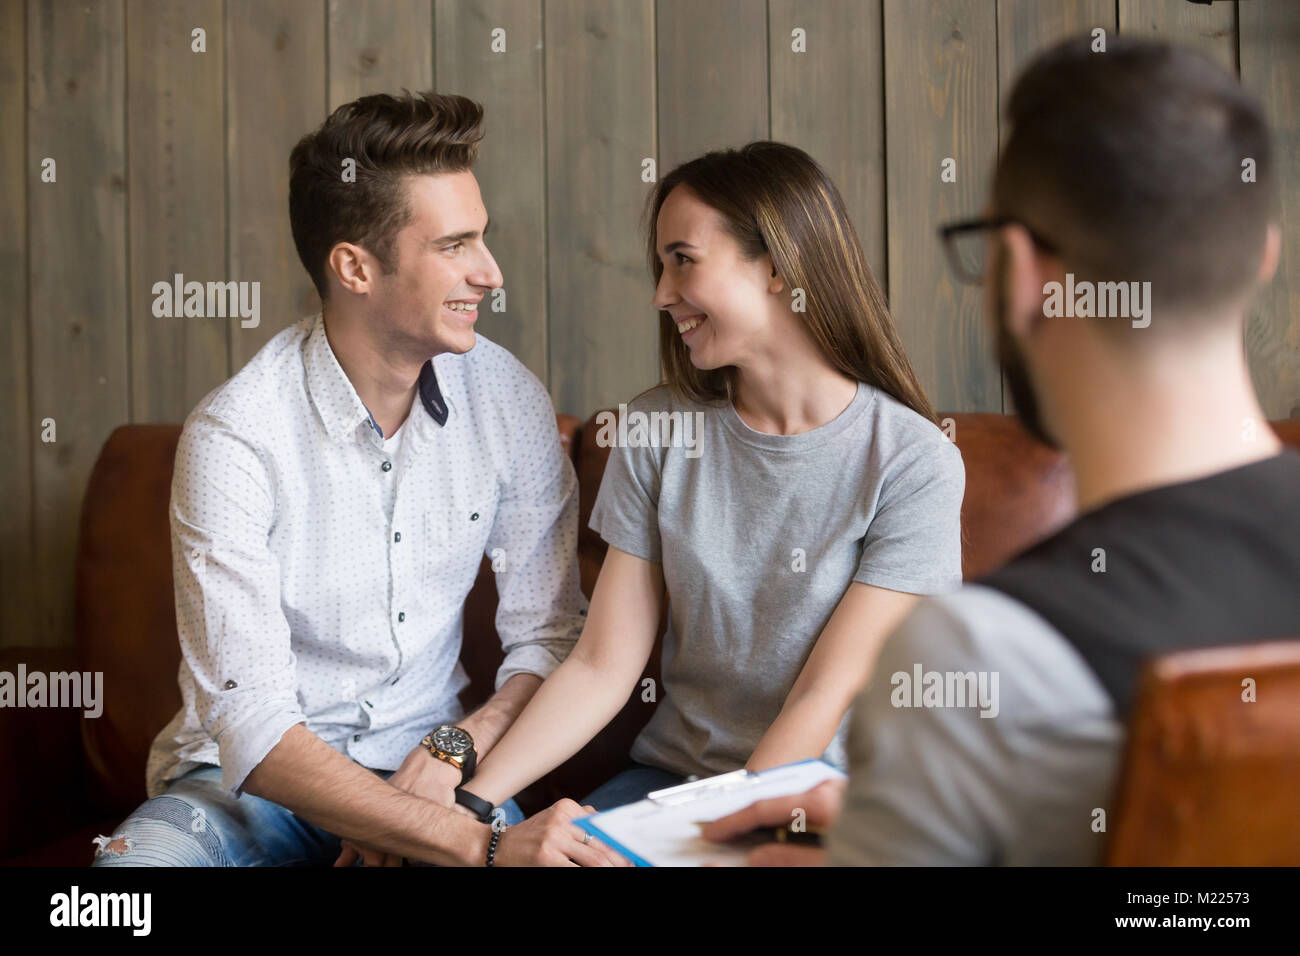 Happy young reconciled couple making up during counseling therap Stock Photo